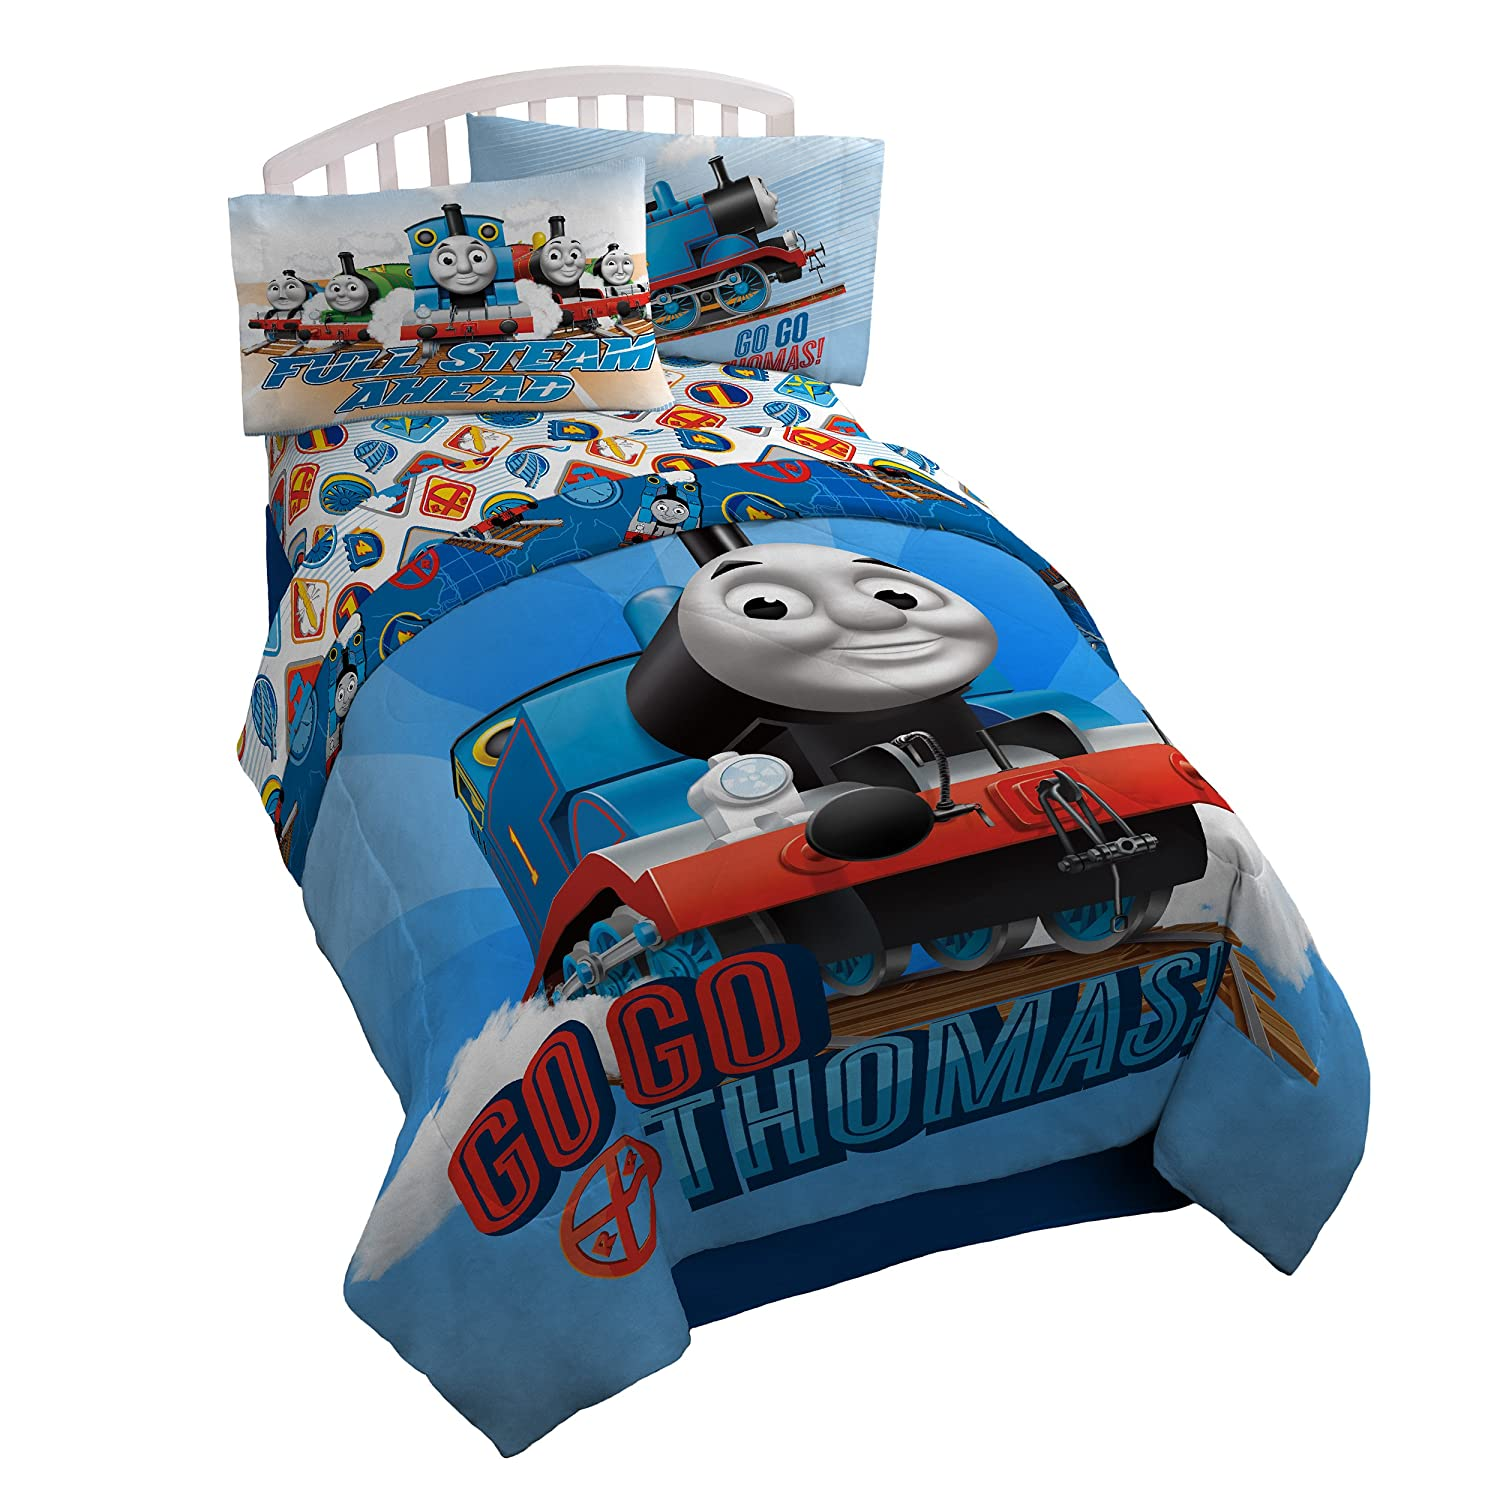 Thomas the Tank Engine 'Go Go' Microfiber Twin Comforter Jay Franco & Sons Inc 3890534